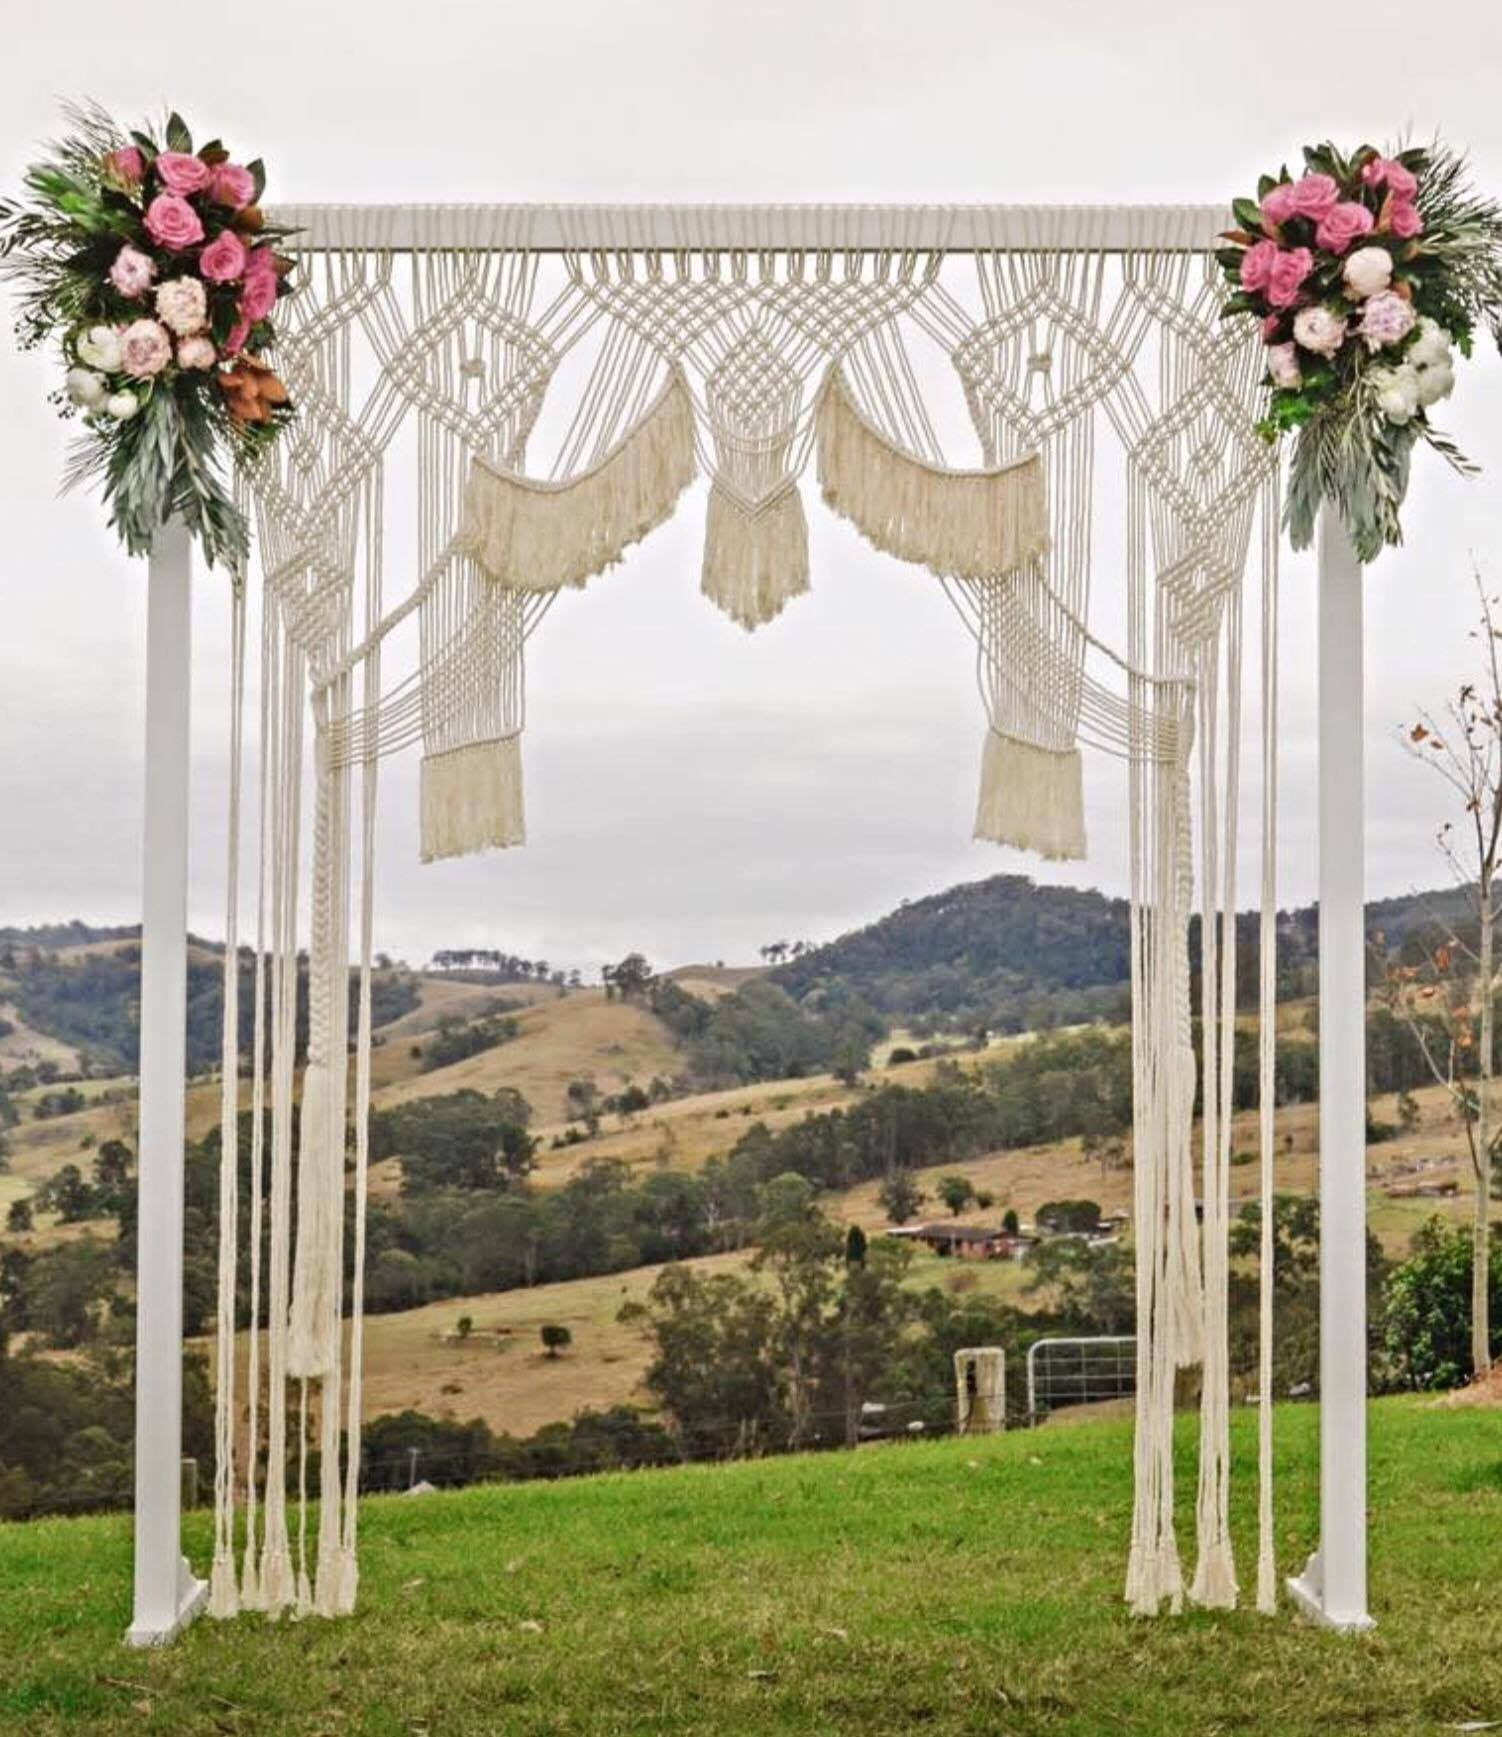 Rustic Wedding Arch Decorations Ideas: A Macrame Wedding Backdrop Is The BEST Way To Reuse